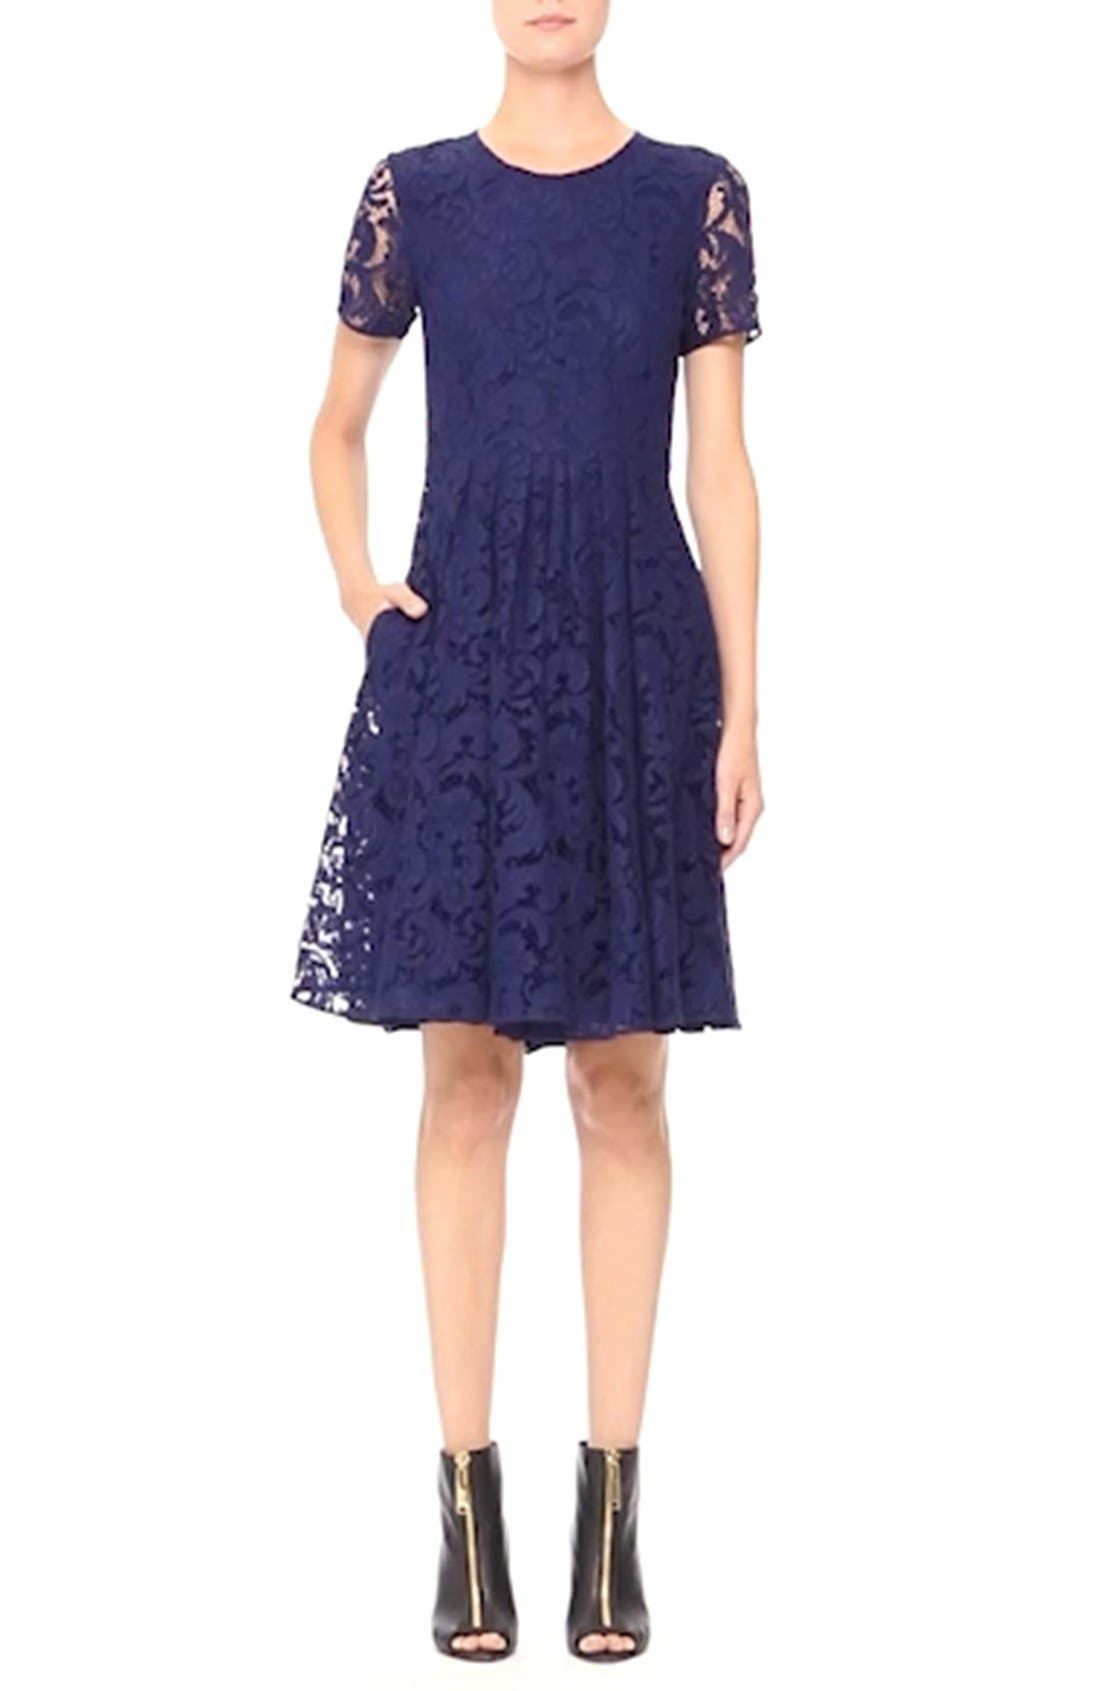 BURBERRY LONDON,                             'Alice' Short Sleeve Corded Lace Fit & Flare Dress,                             Alternate thumbnail 5, color,                             495